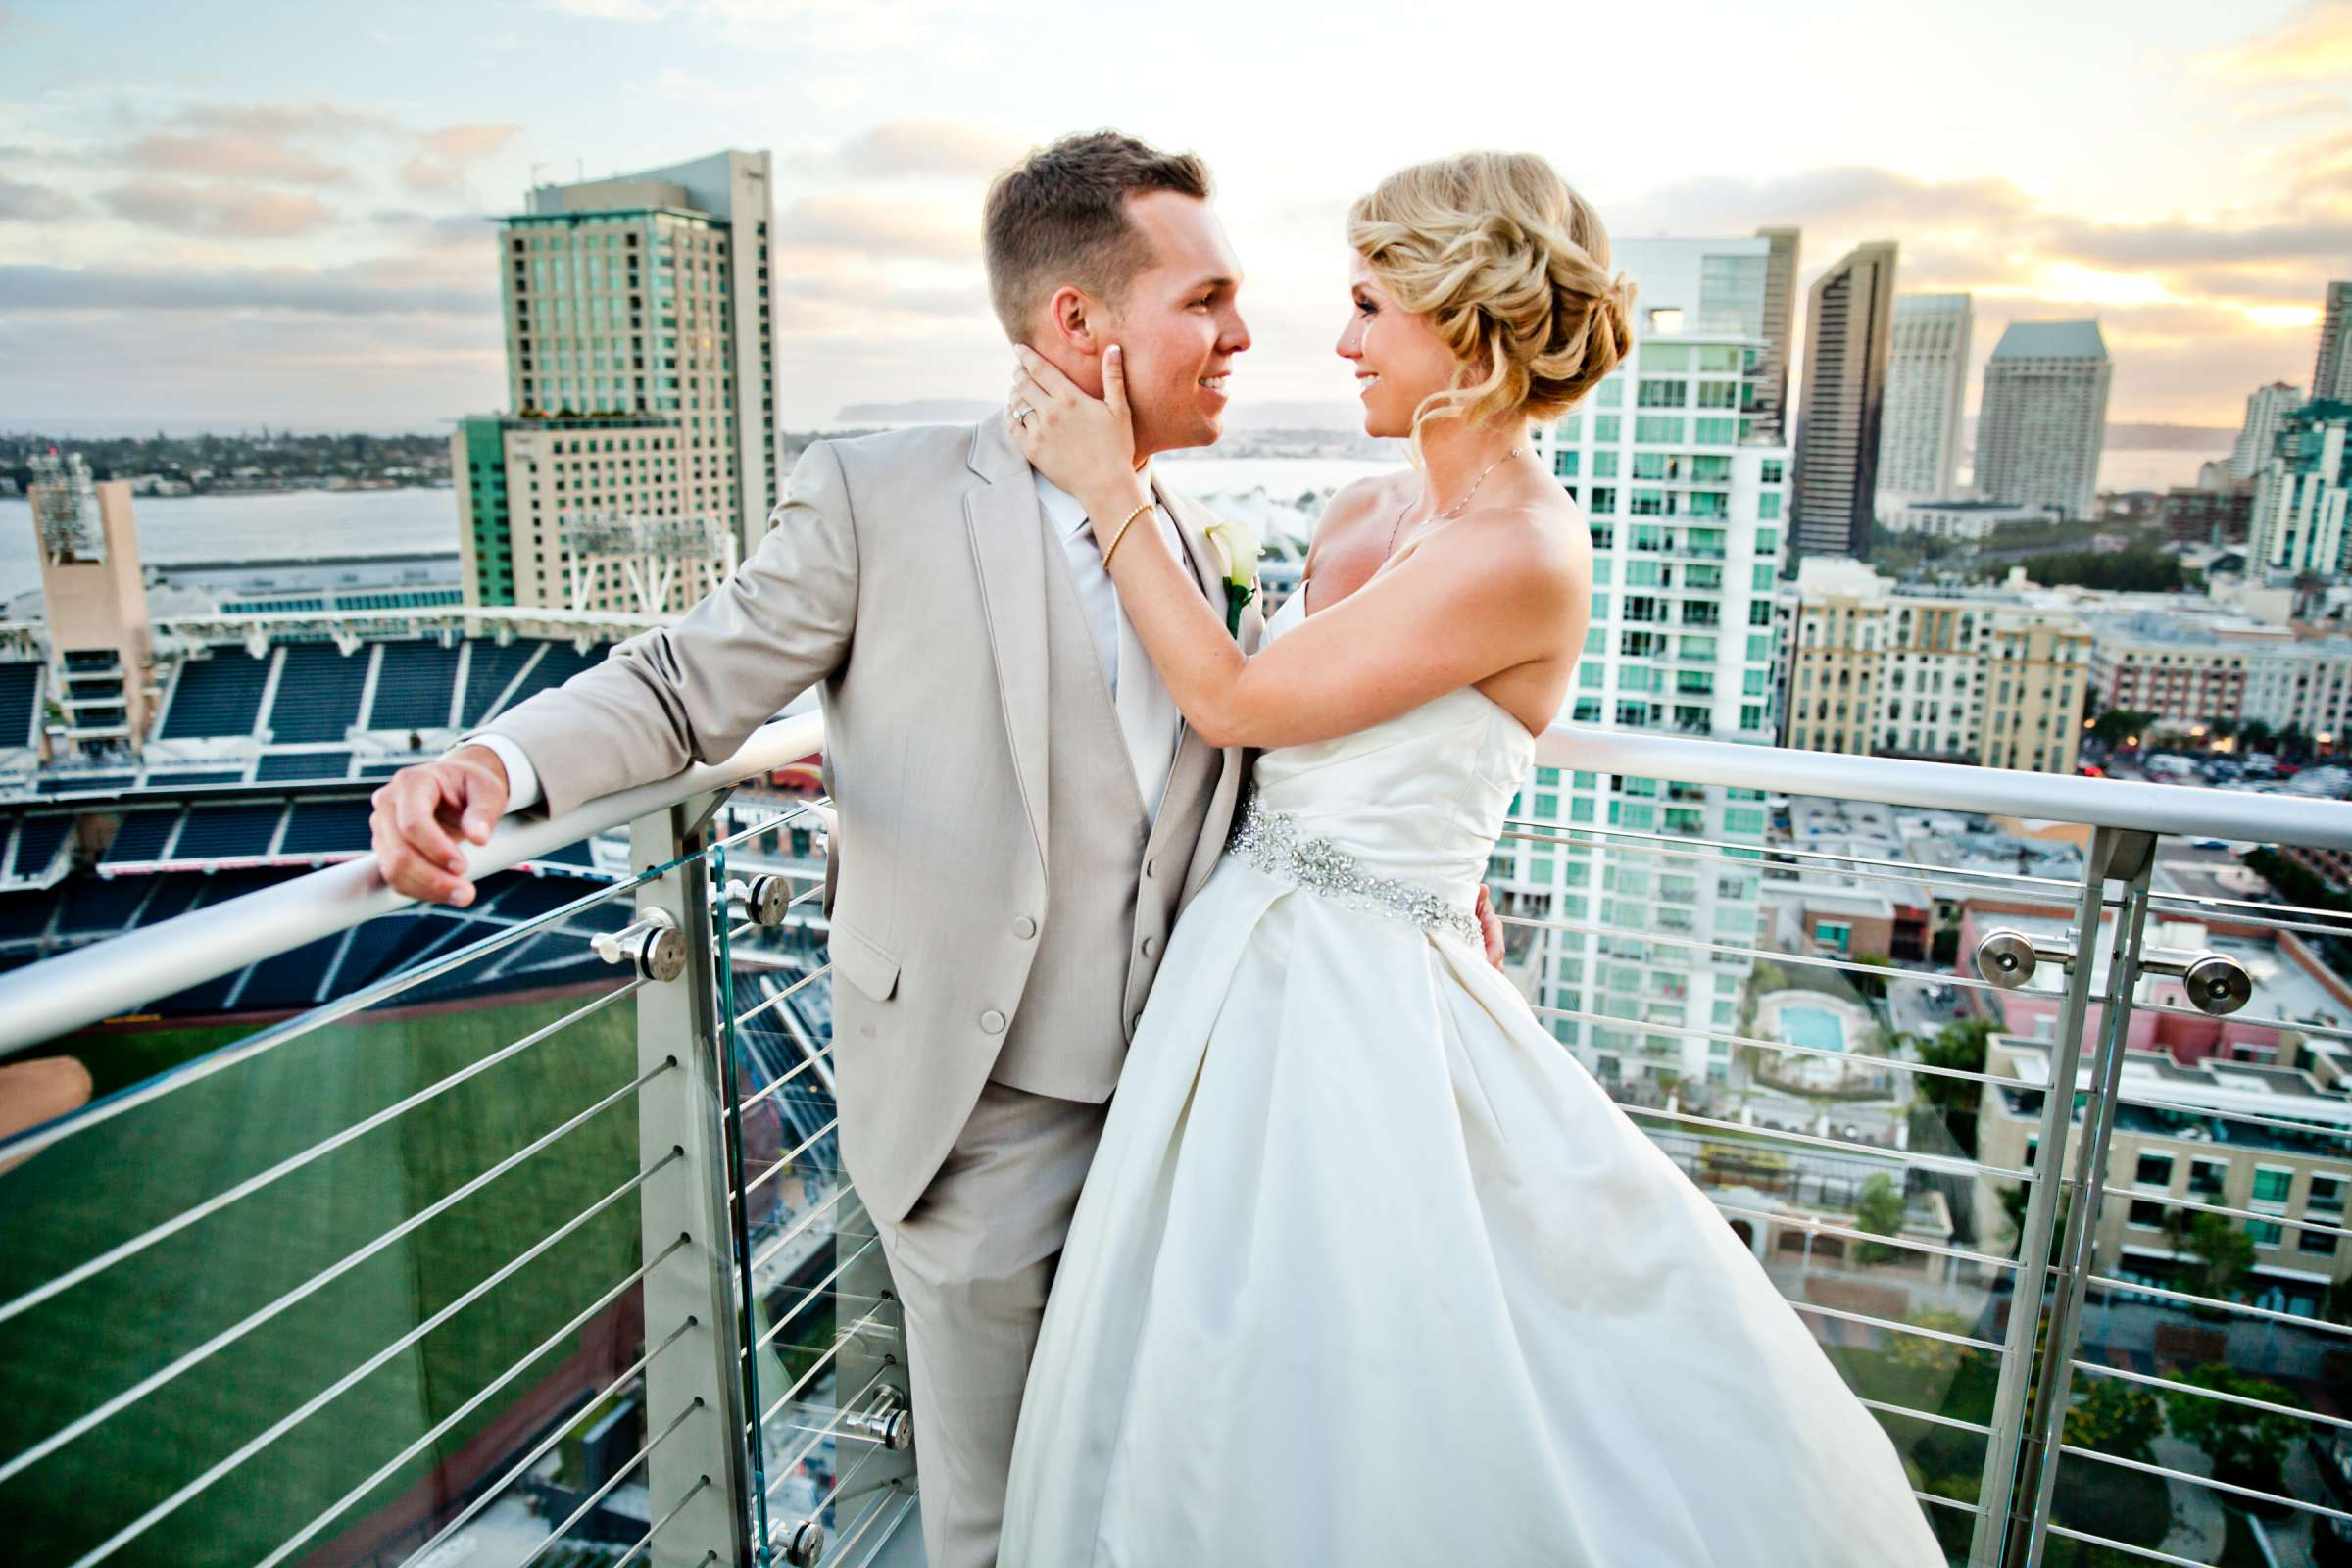 Ultimate Skybox Wedding, Kelly and Daniel Wedding Photo #3 by True Photography